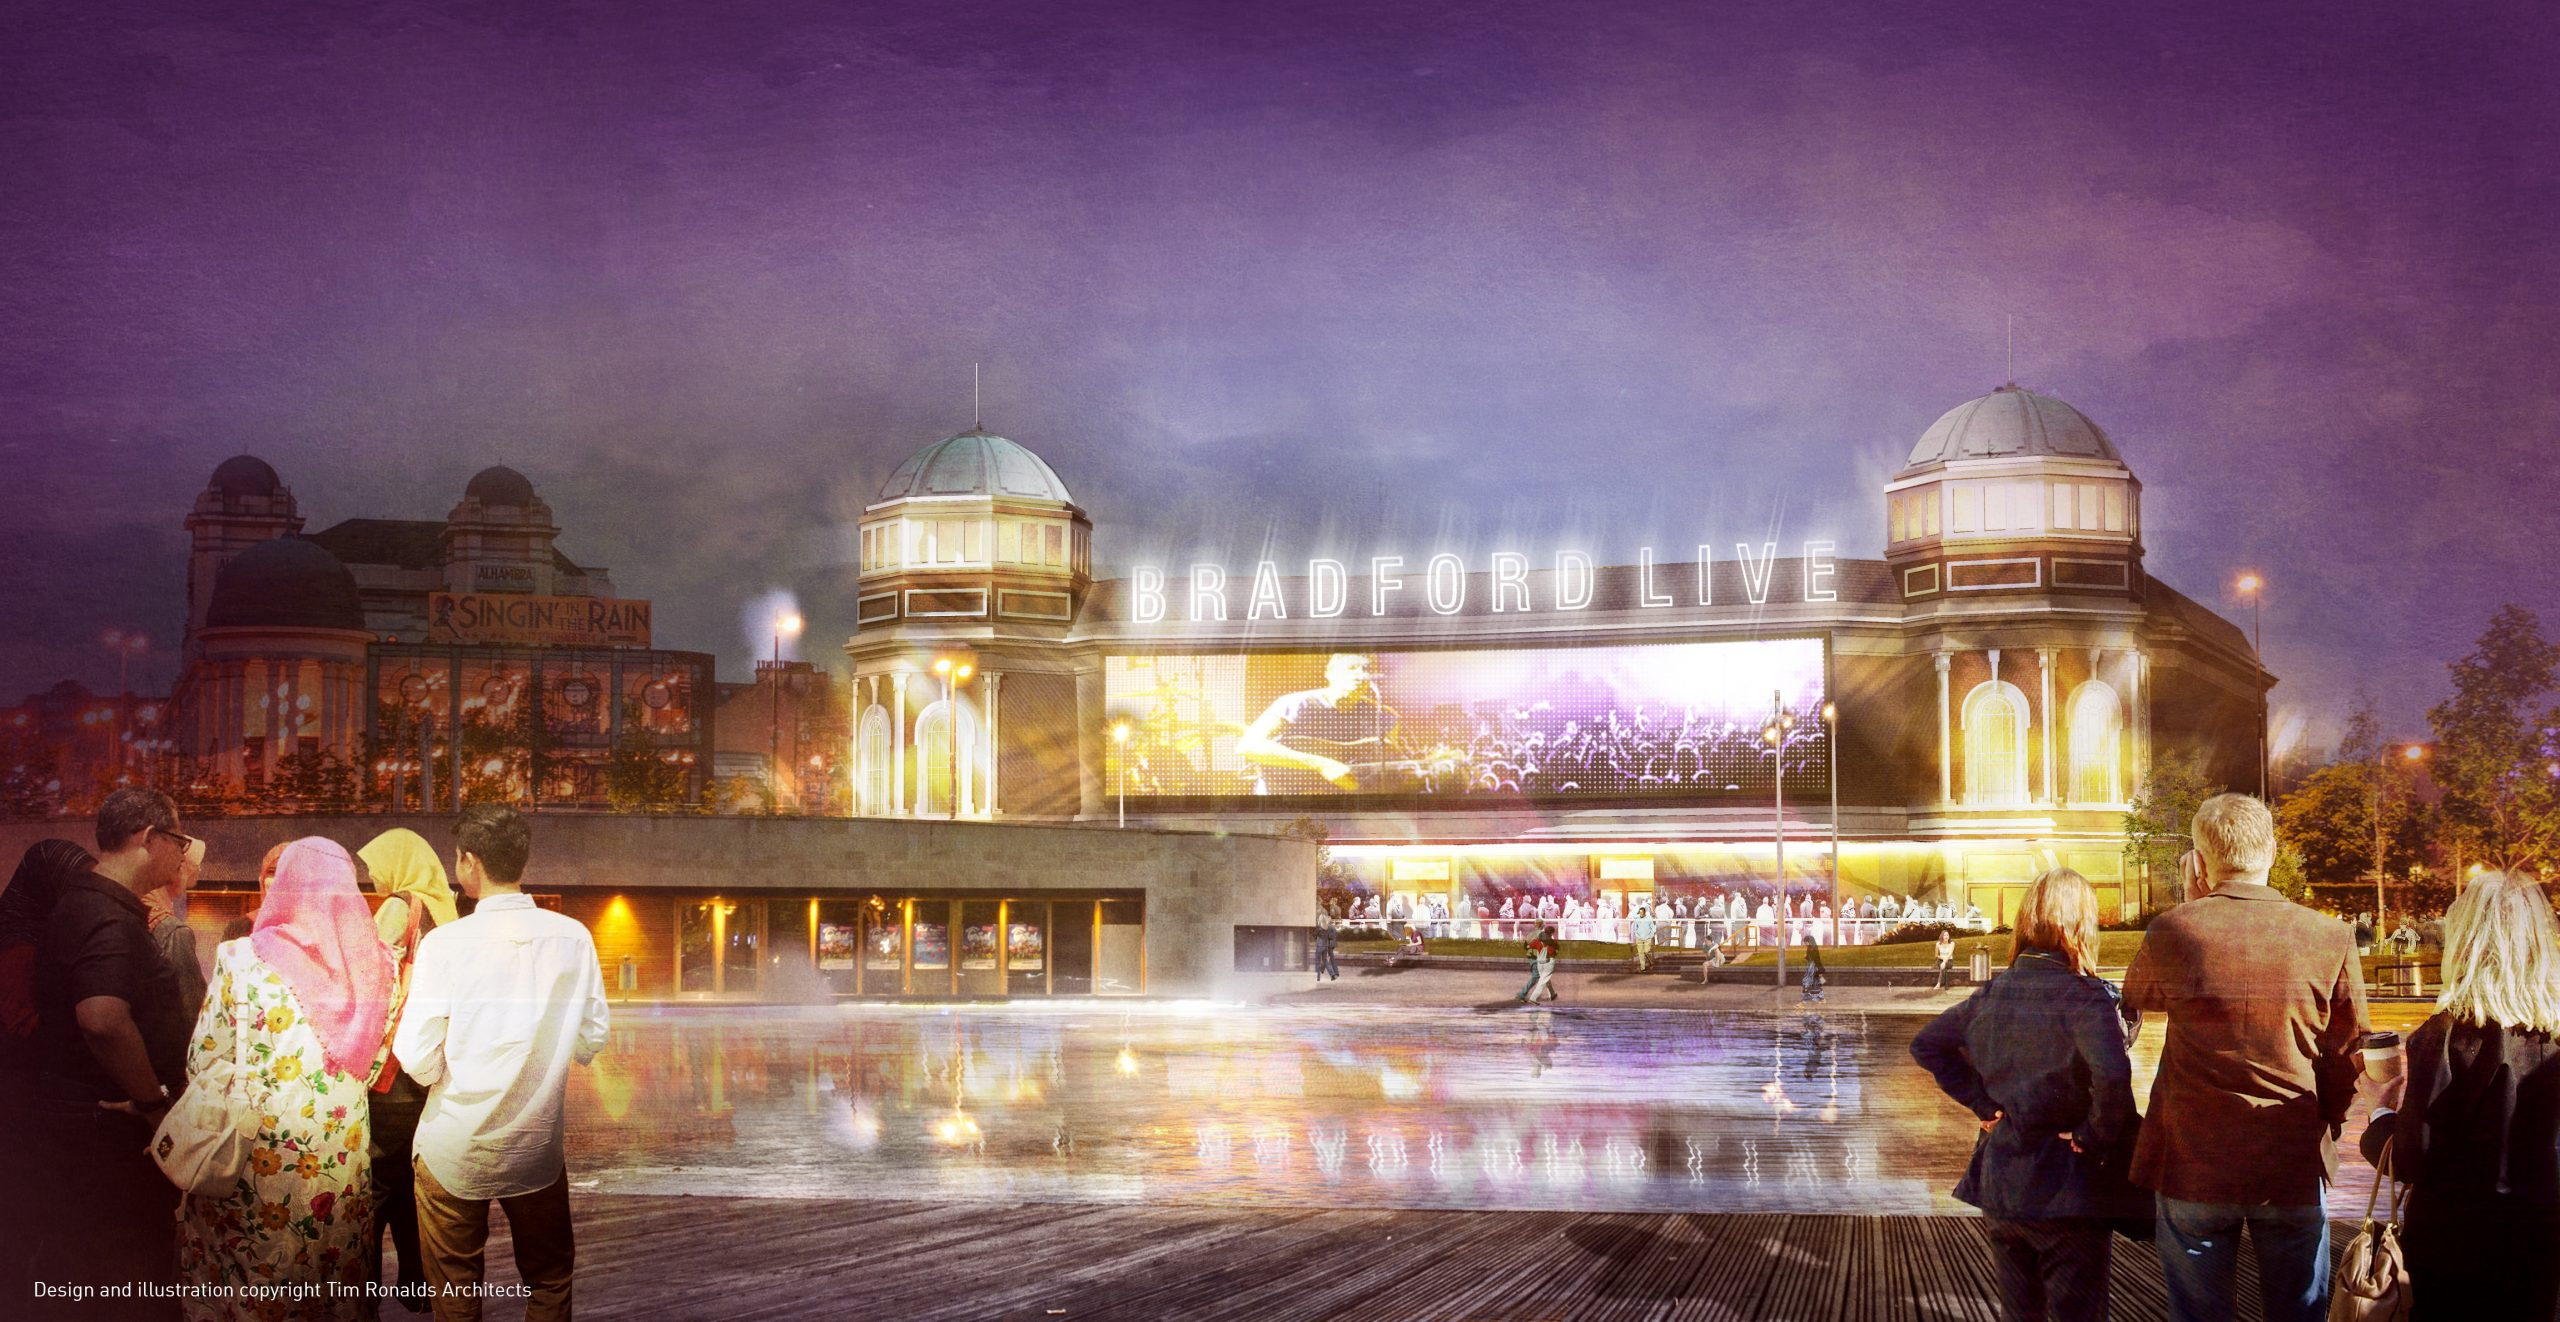 TURNER & TOWNSEND APPOINTED TO PROJECT MANAGE COMPLETION OF BRADFORD LIVE